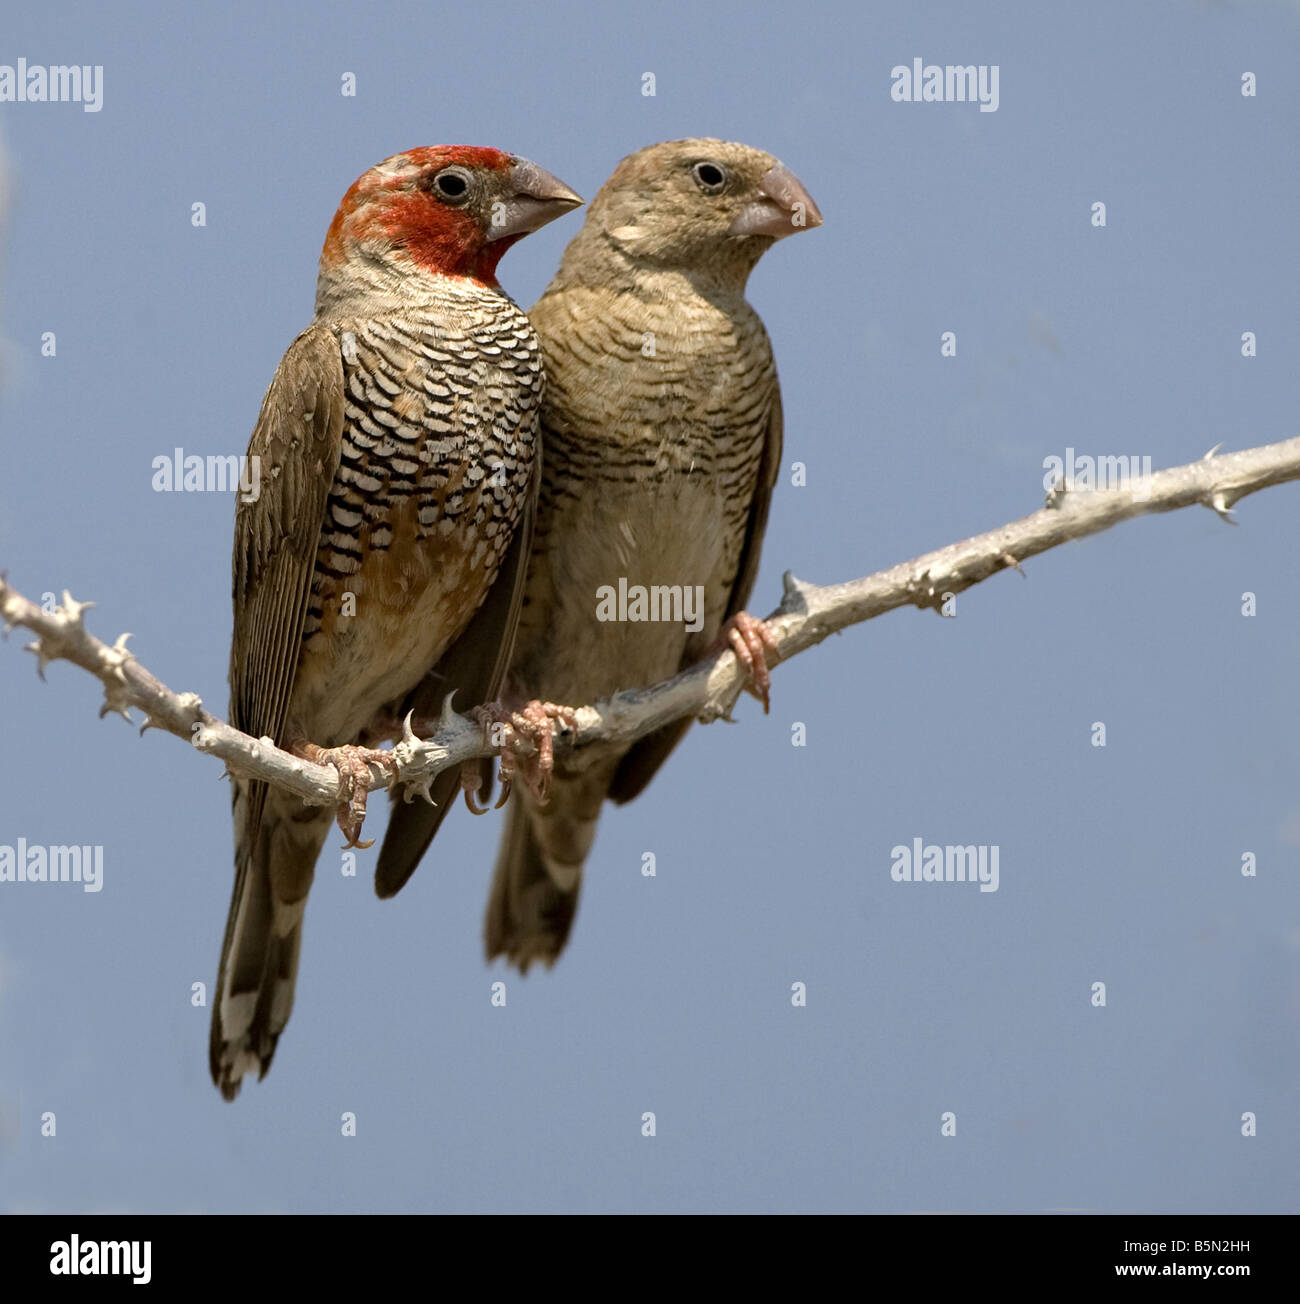 Redheaded finches perched in tree,Etosha,Namibia - Stock Image